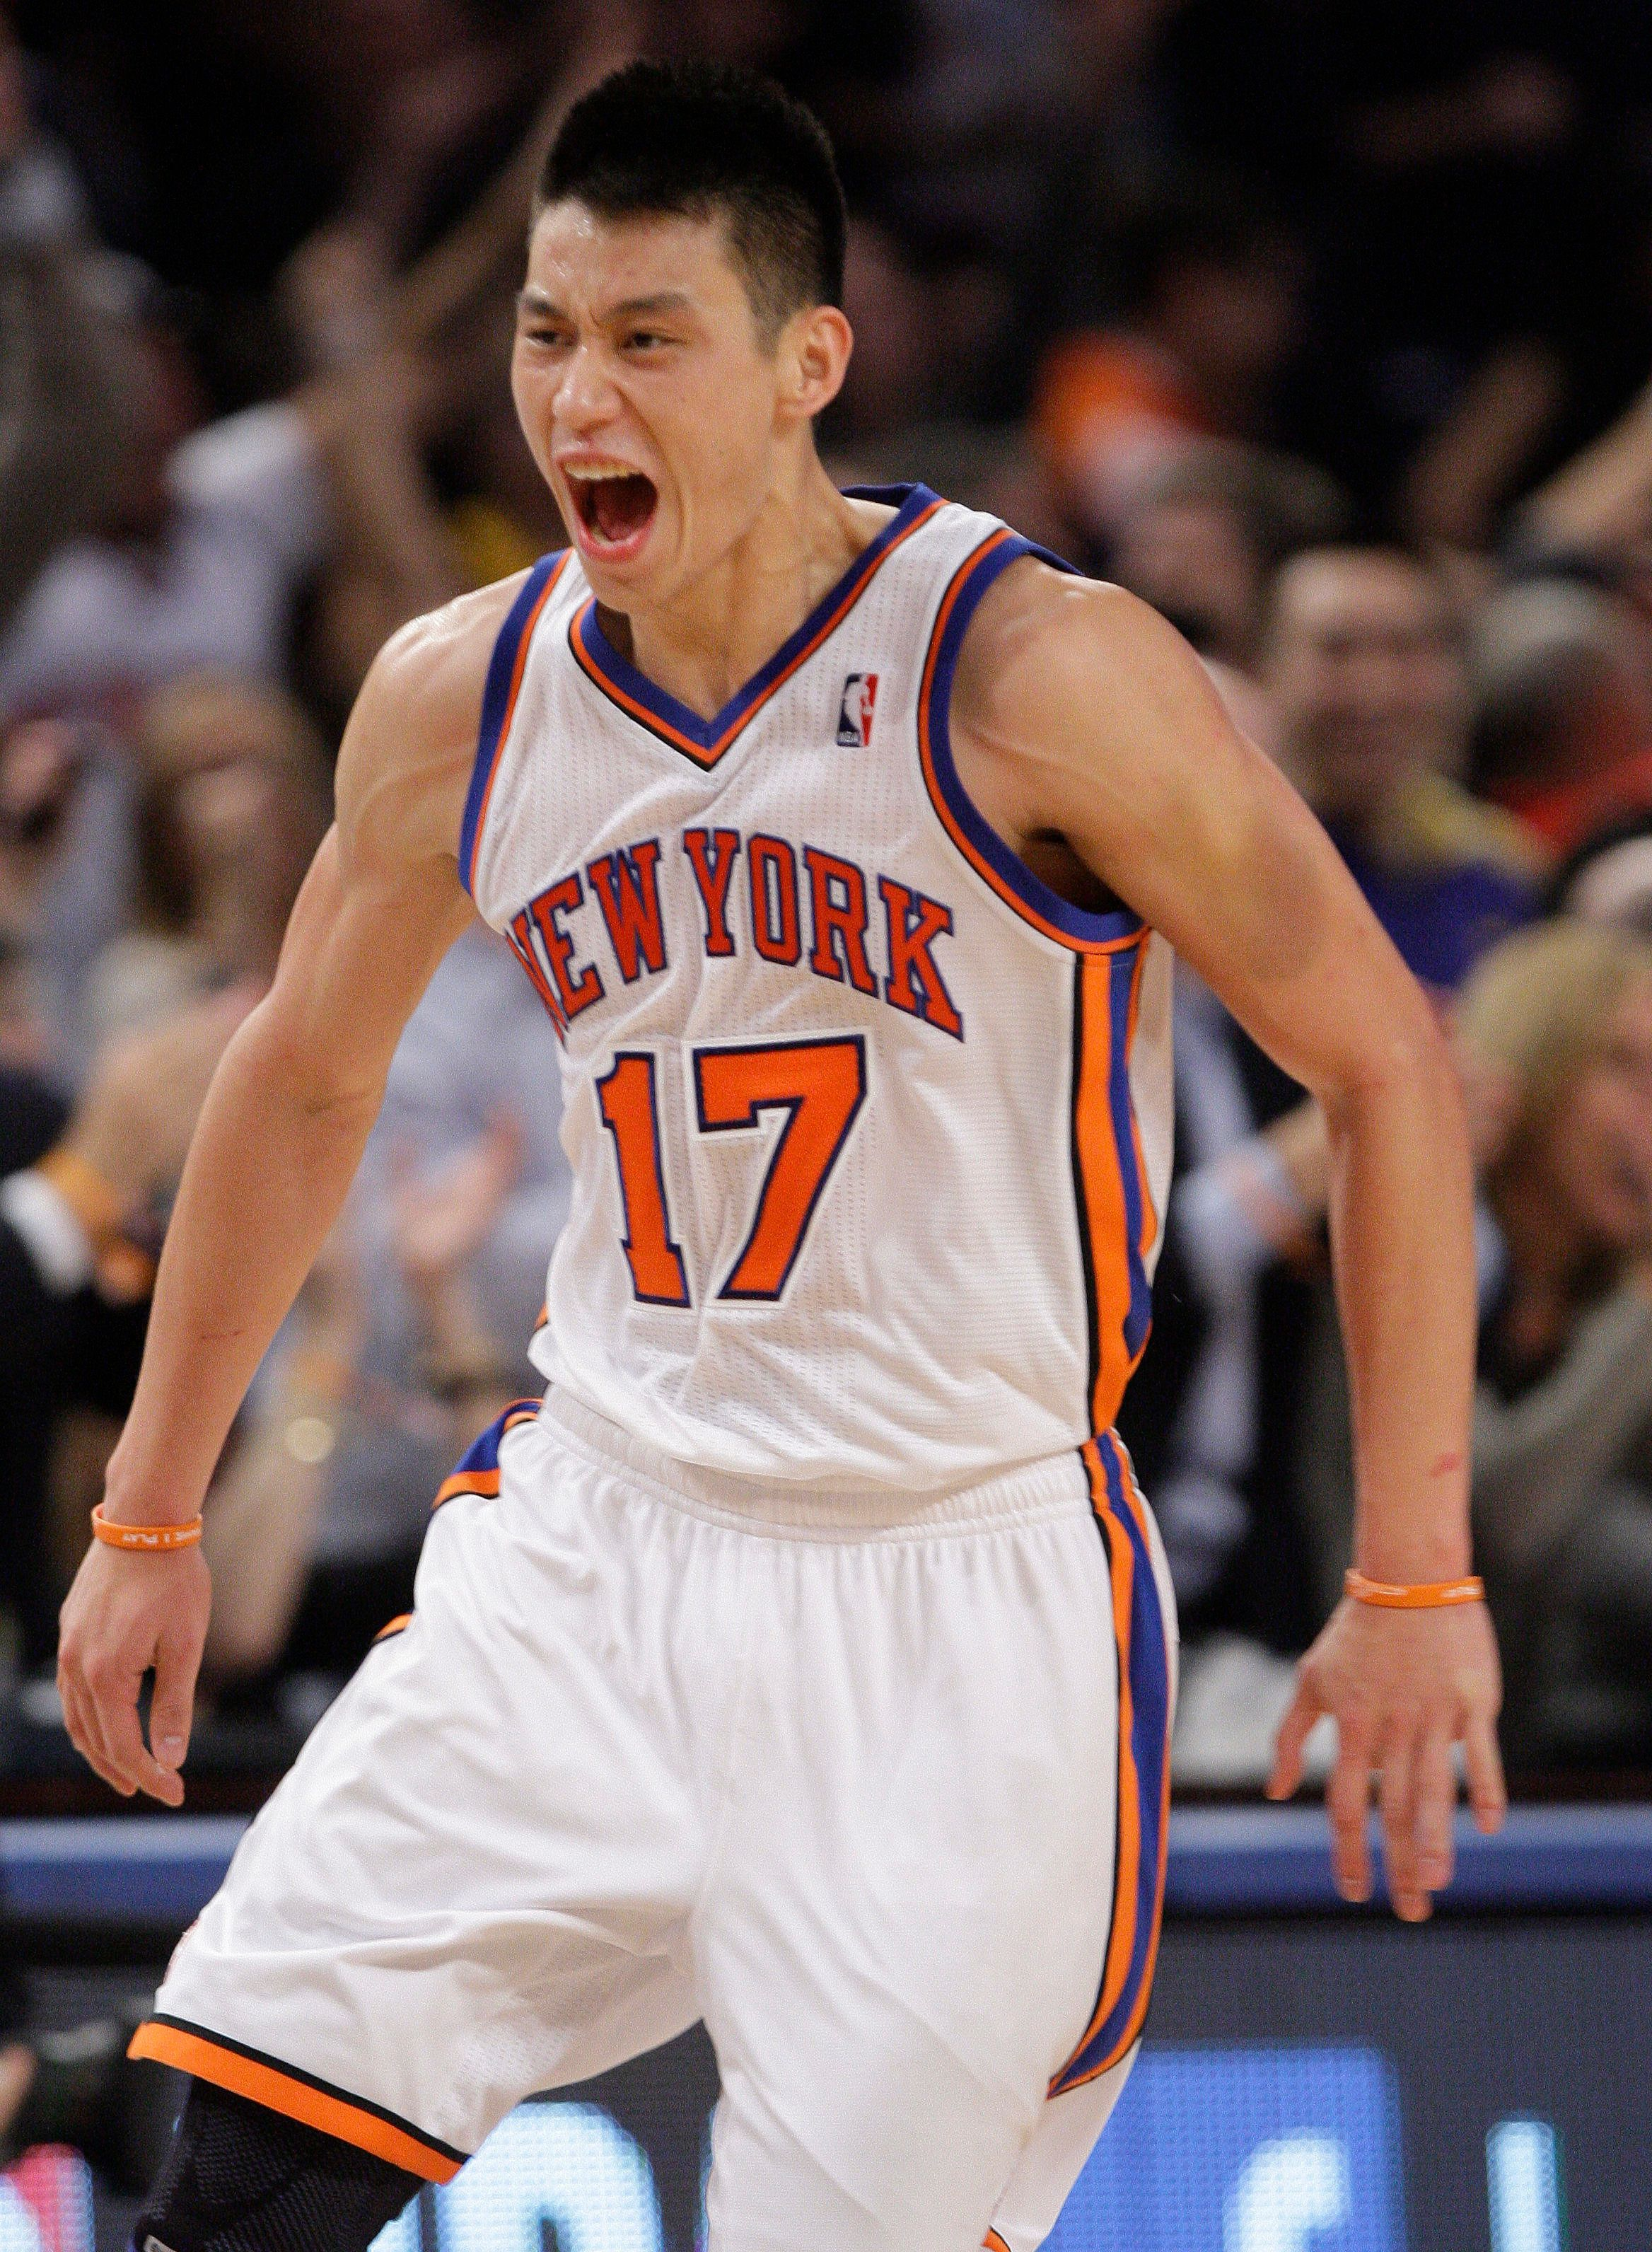 Jeremy Lin's impact in New York is still felt by many fans today.